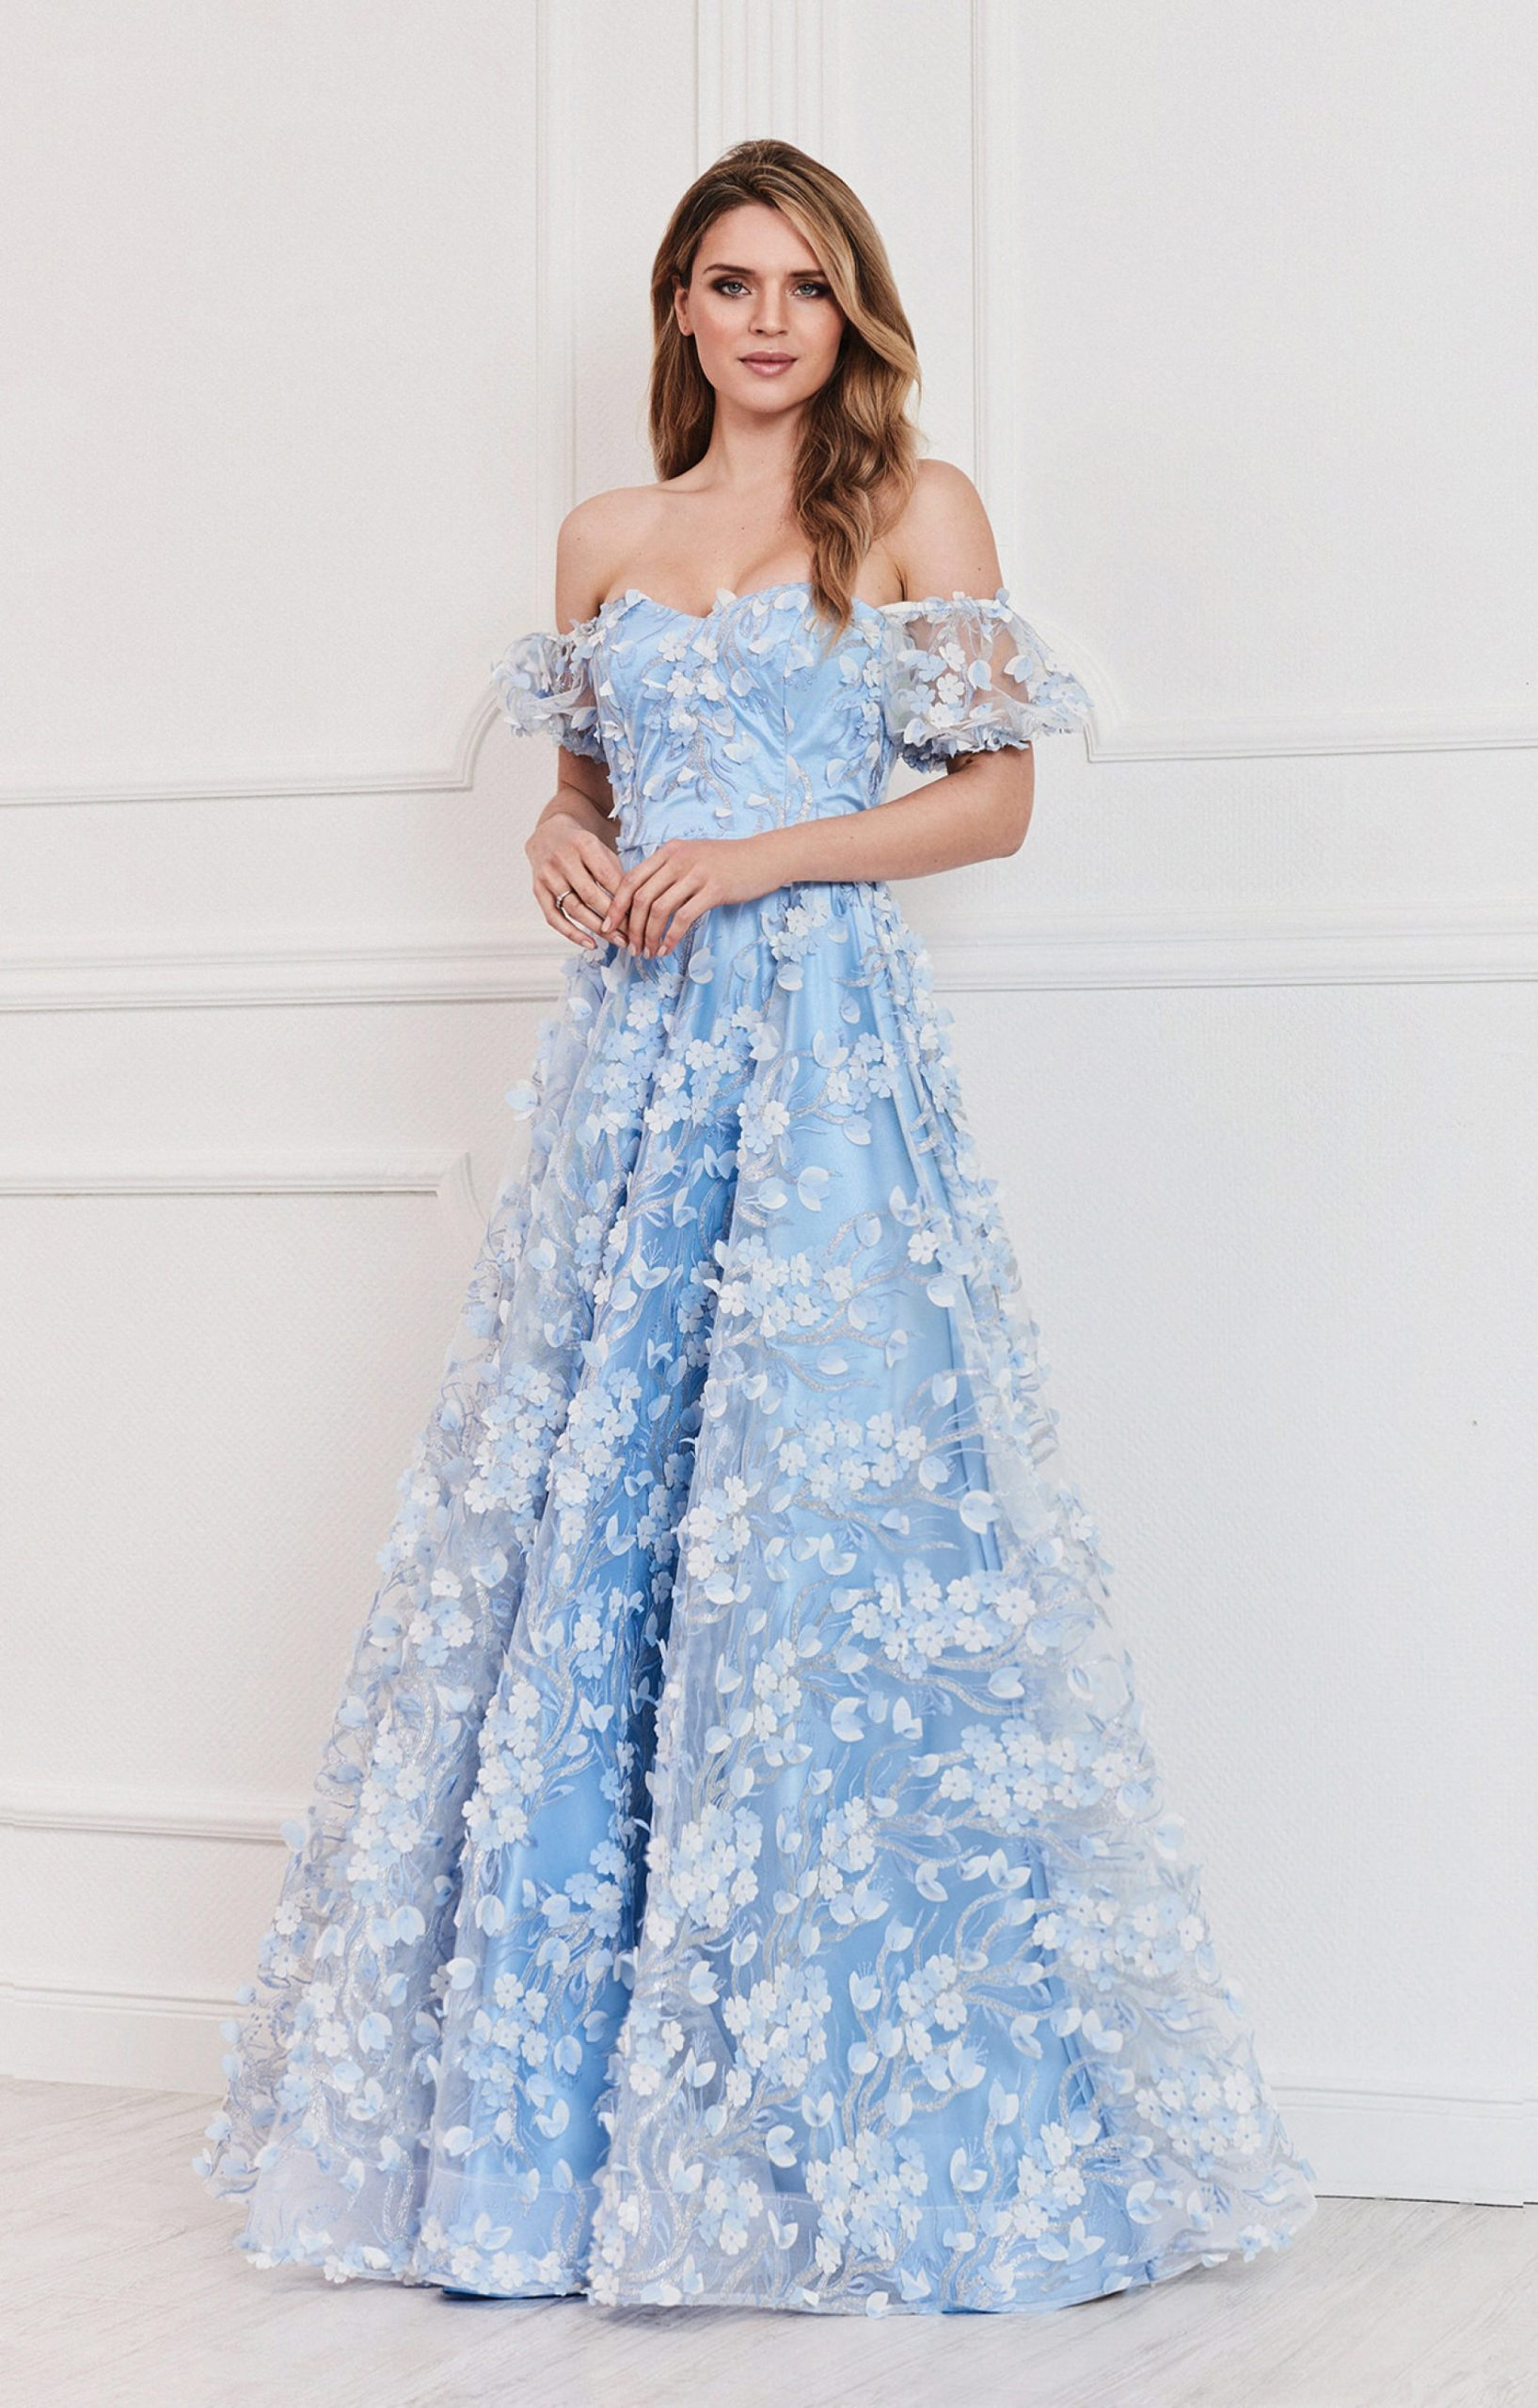 Formal Luxurius Abendkleid In Blau für 201910 Spektakulär Abendkleid In Blau Spezialgebiet